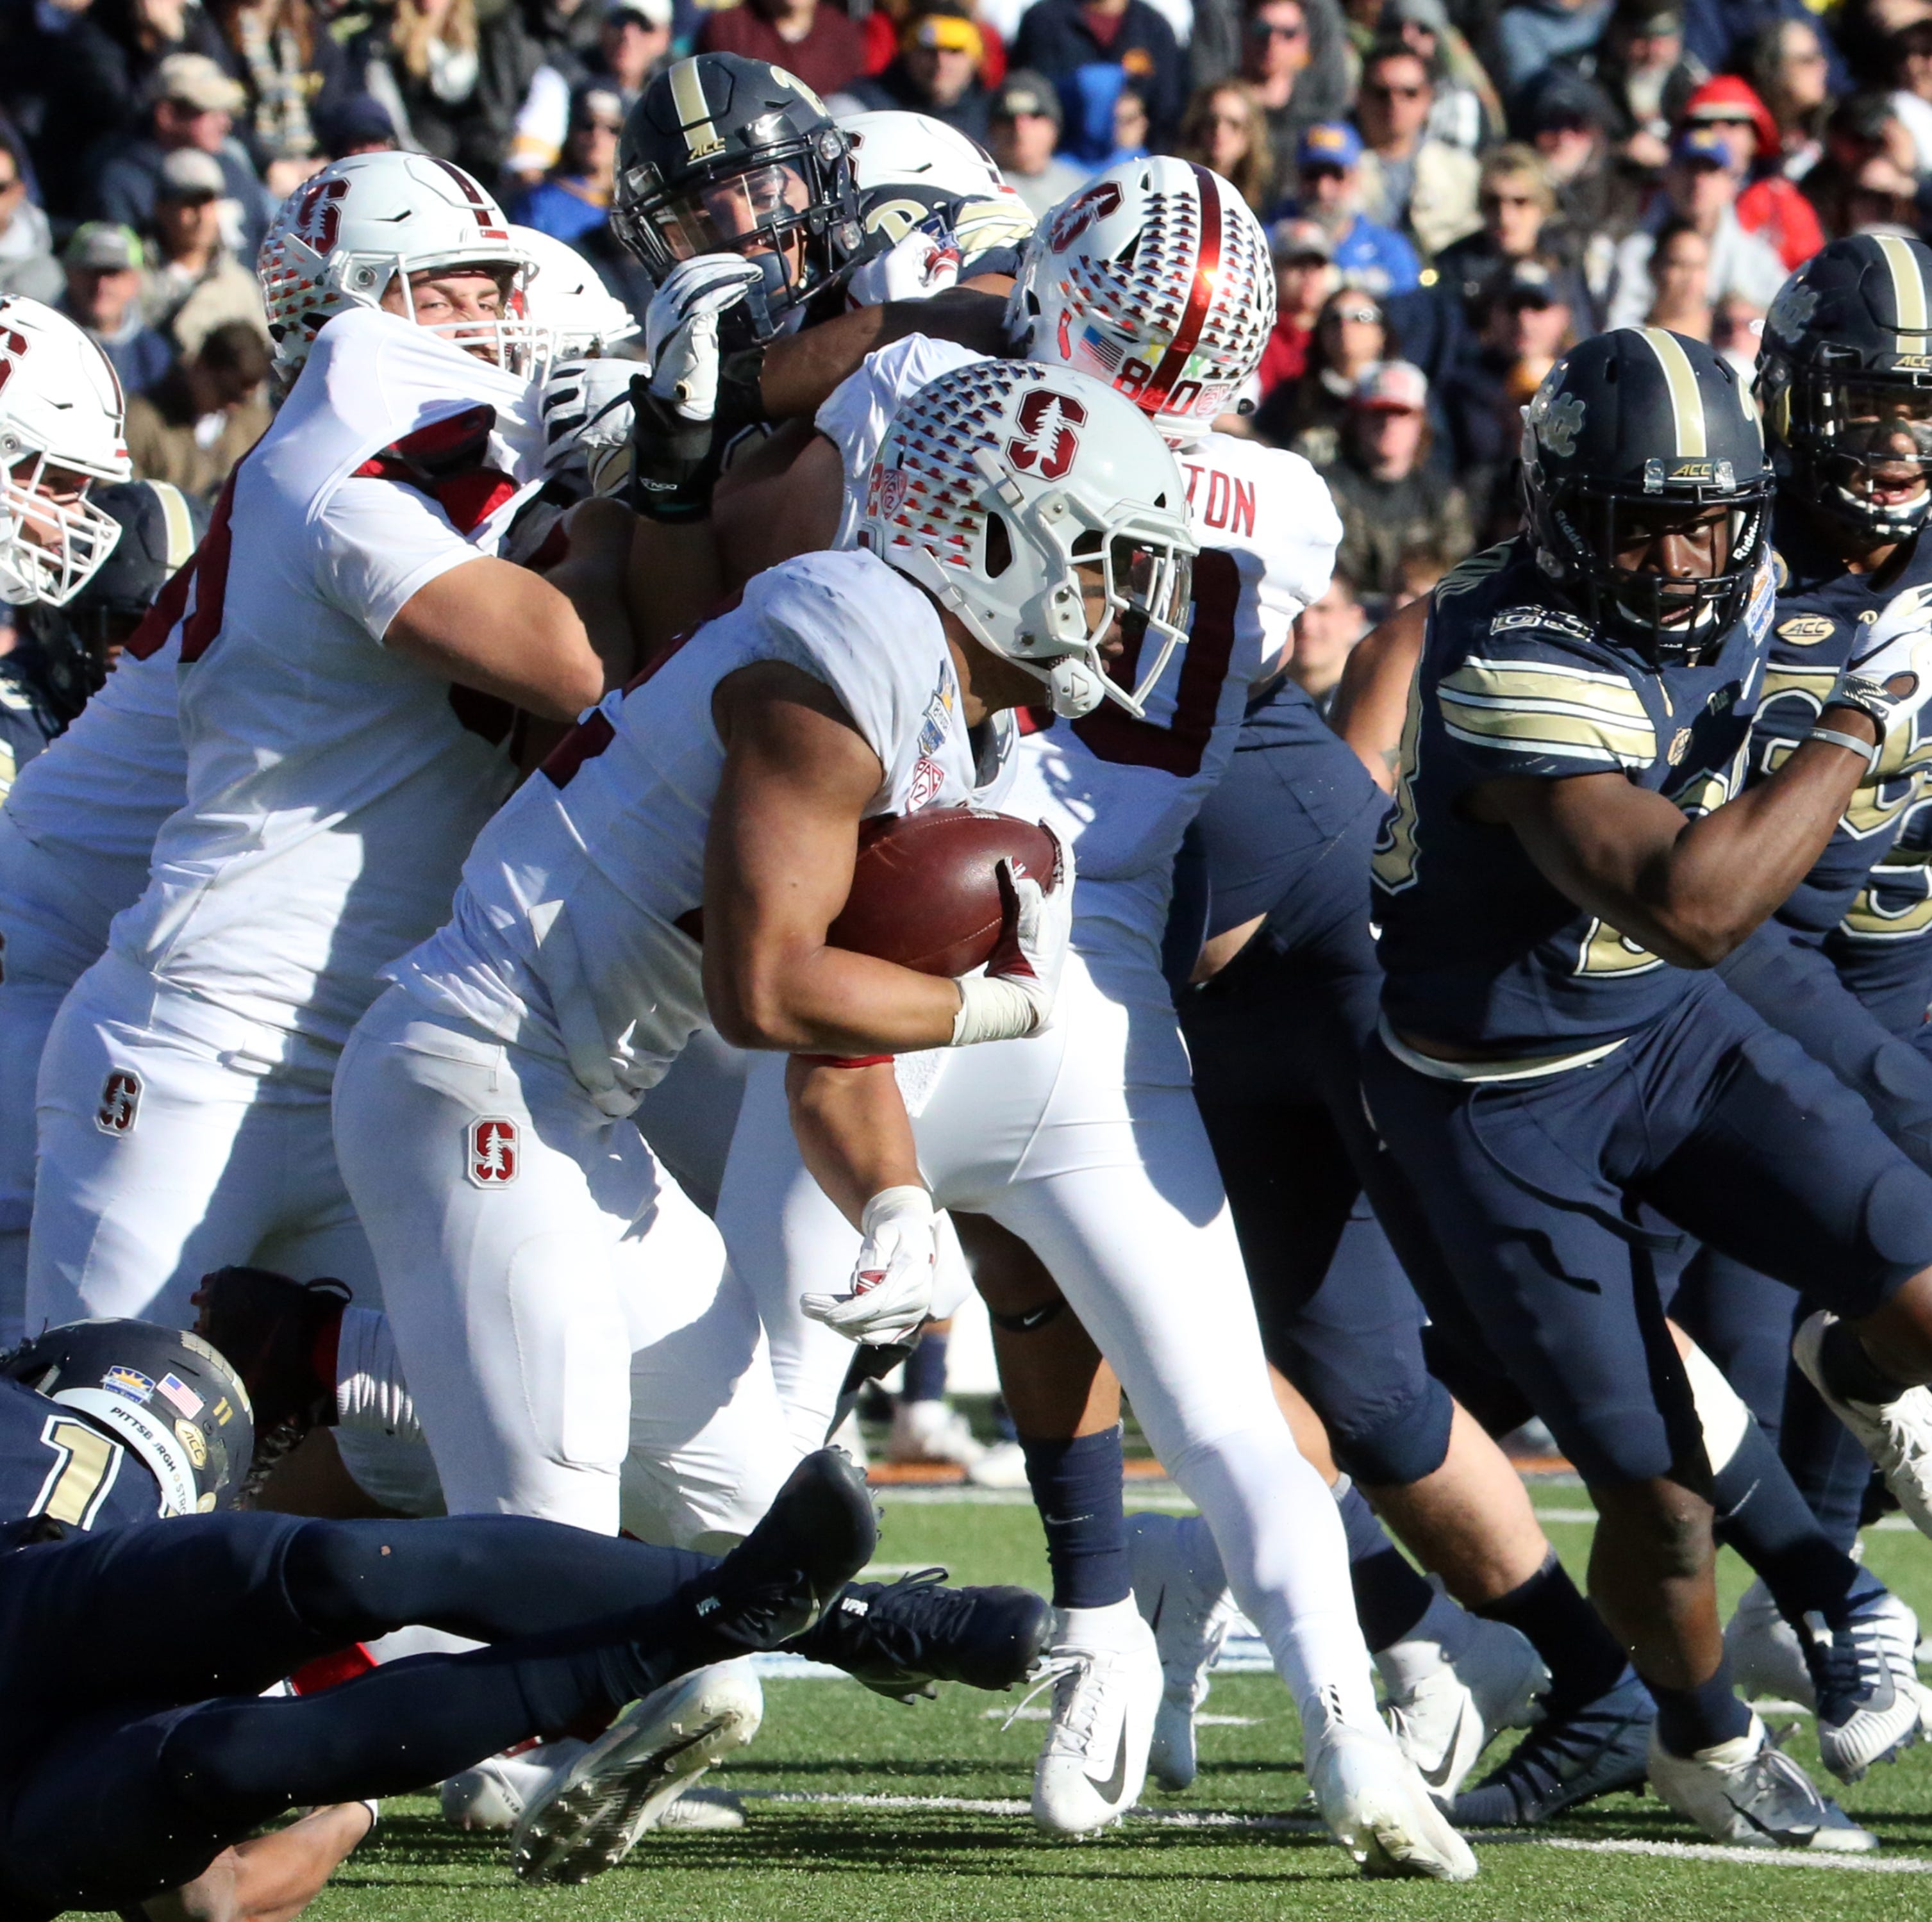 Sun Bowl final score, 14-13: Stanford's fortunate fumble puts them over Pitt